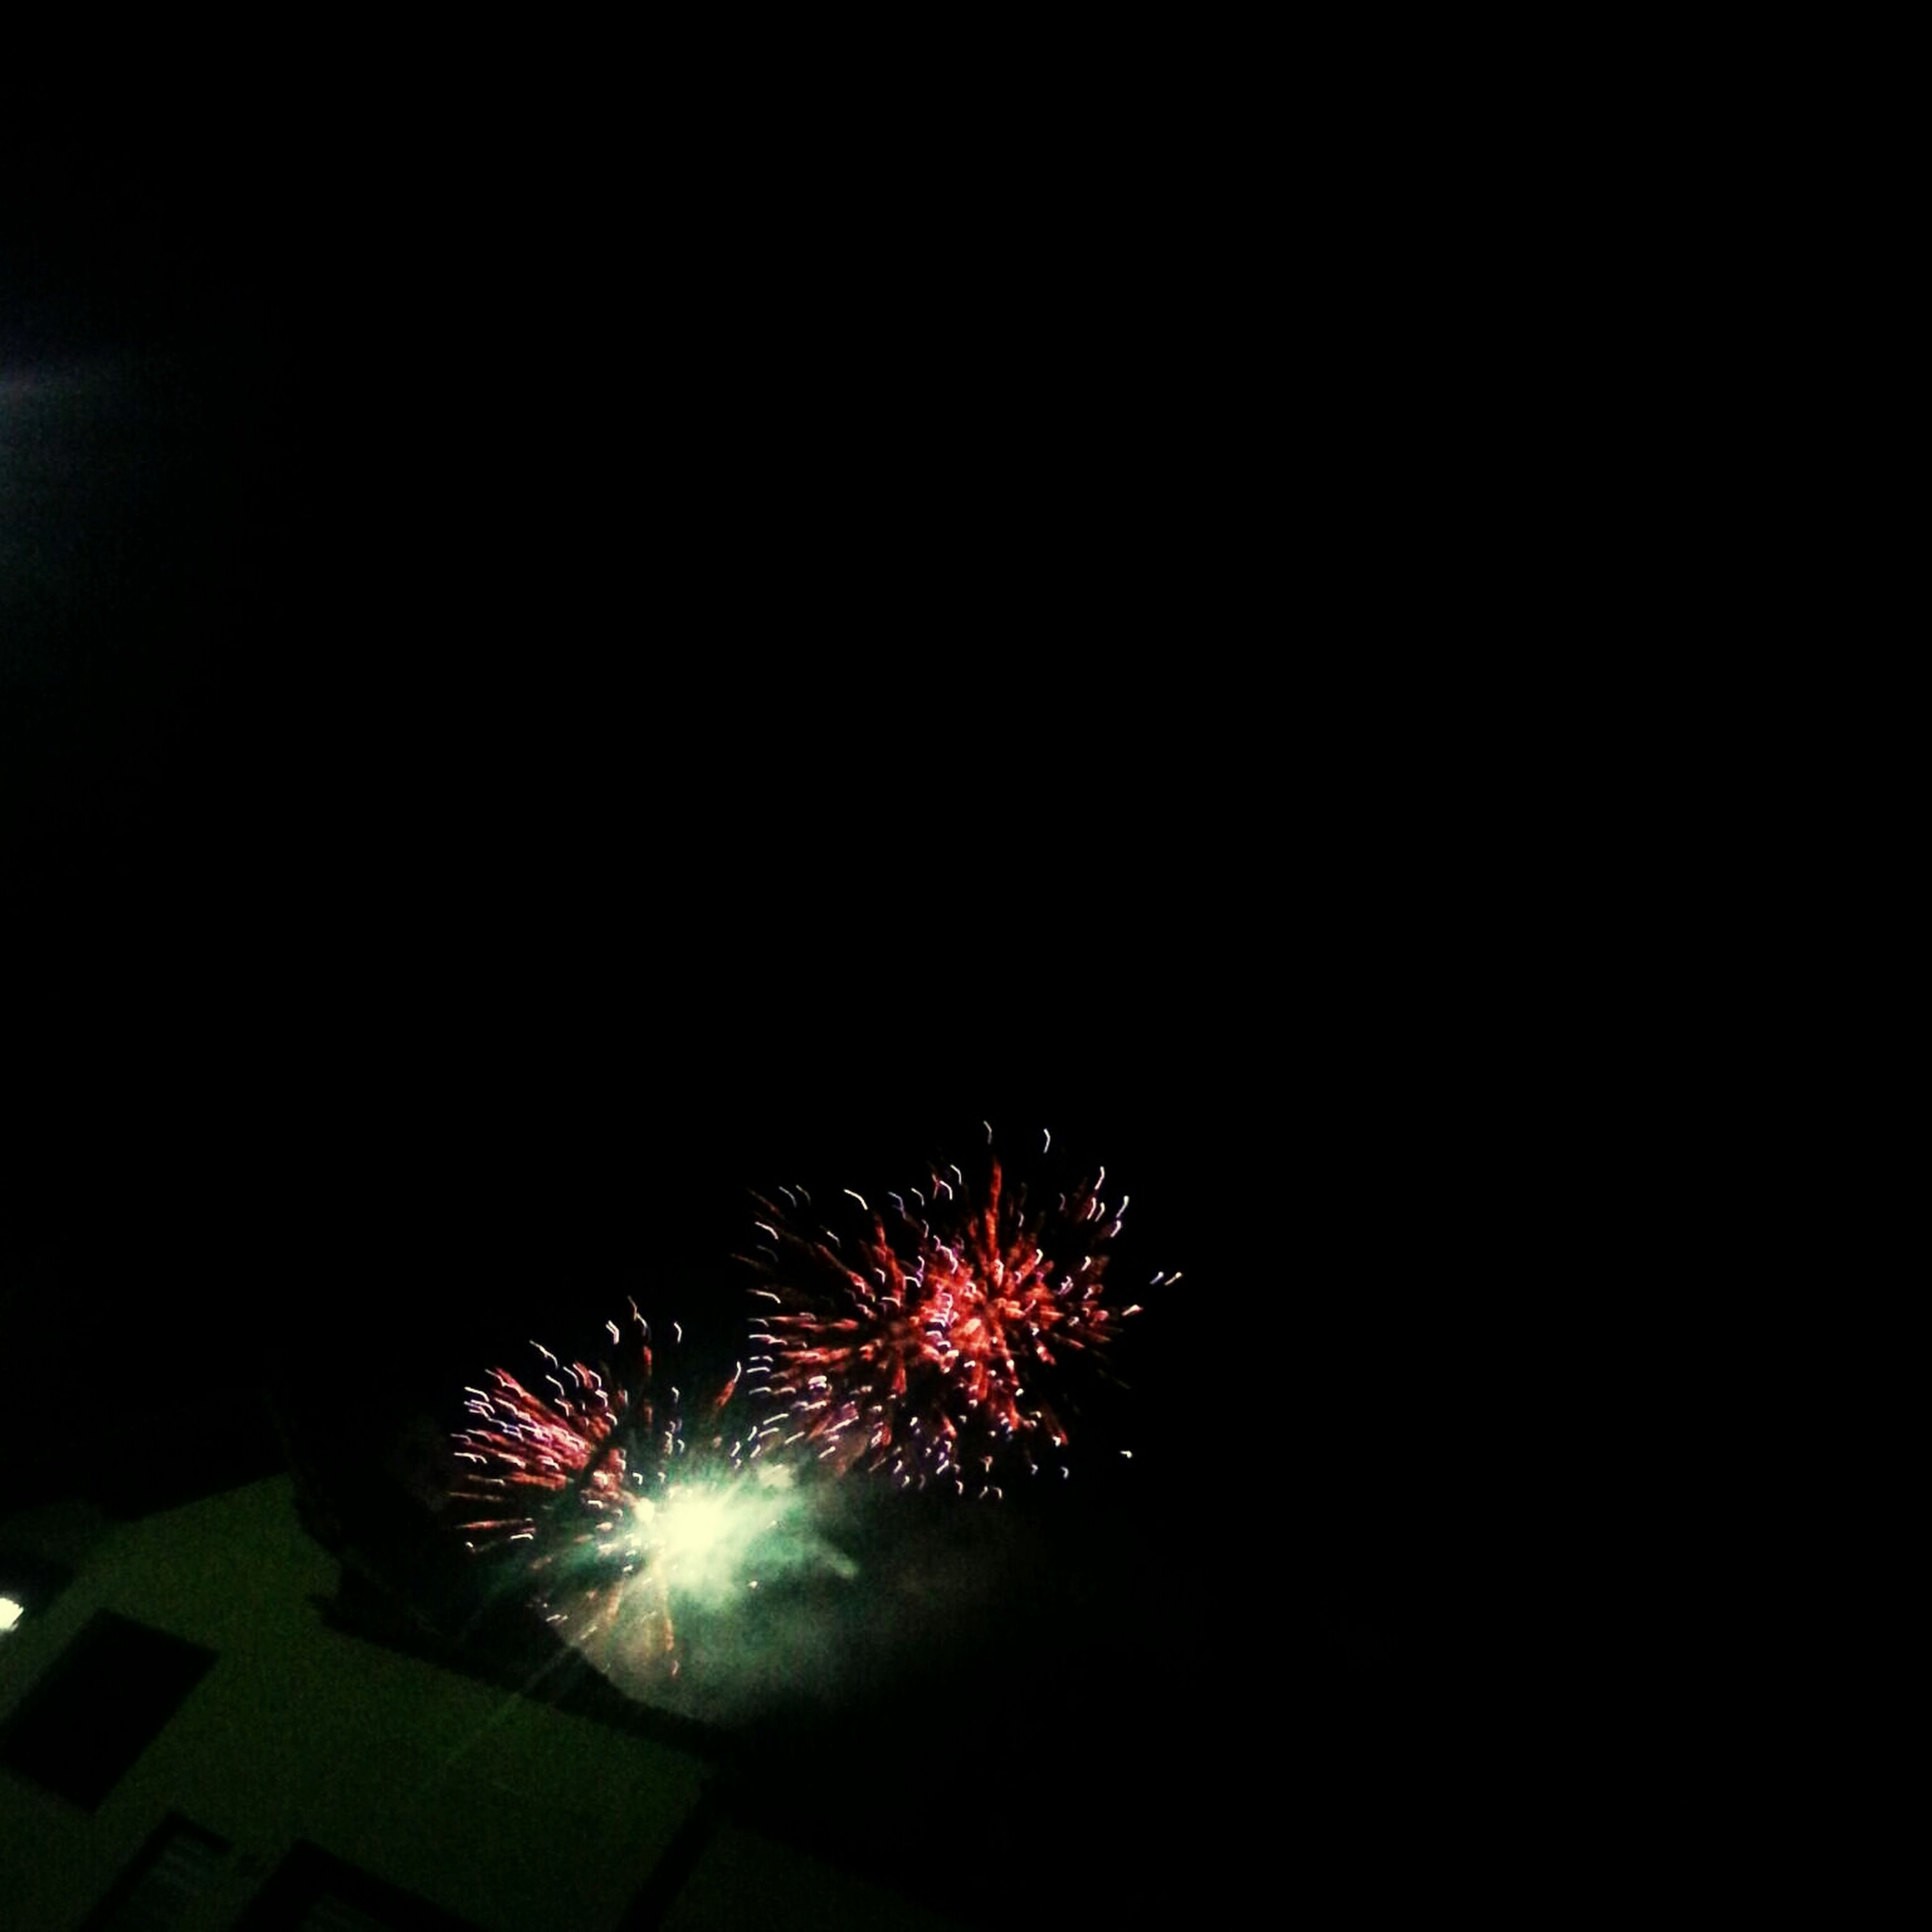 night, illuminated, firework display, celebration, low angle view, long exposure, glowing, exploding, arts culture and entertainment, firework - man made object, motion, sky, sparks, copy space, event, firework, dark, blurred motion, light - natural phenomenon, entertainment